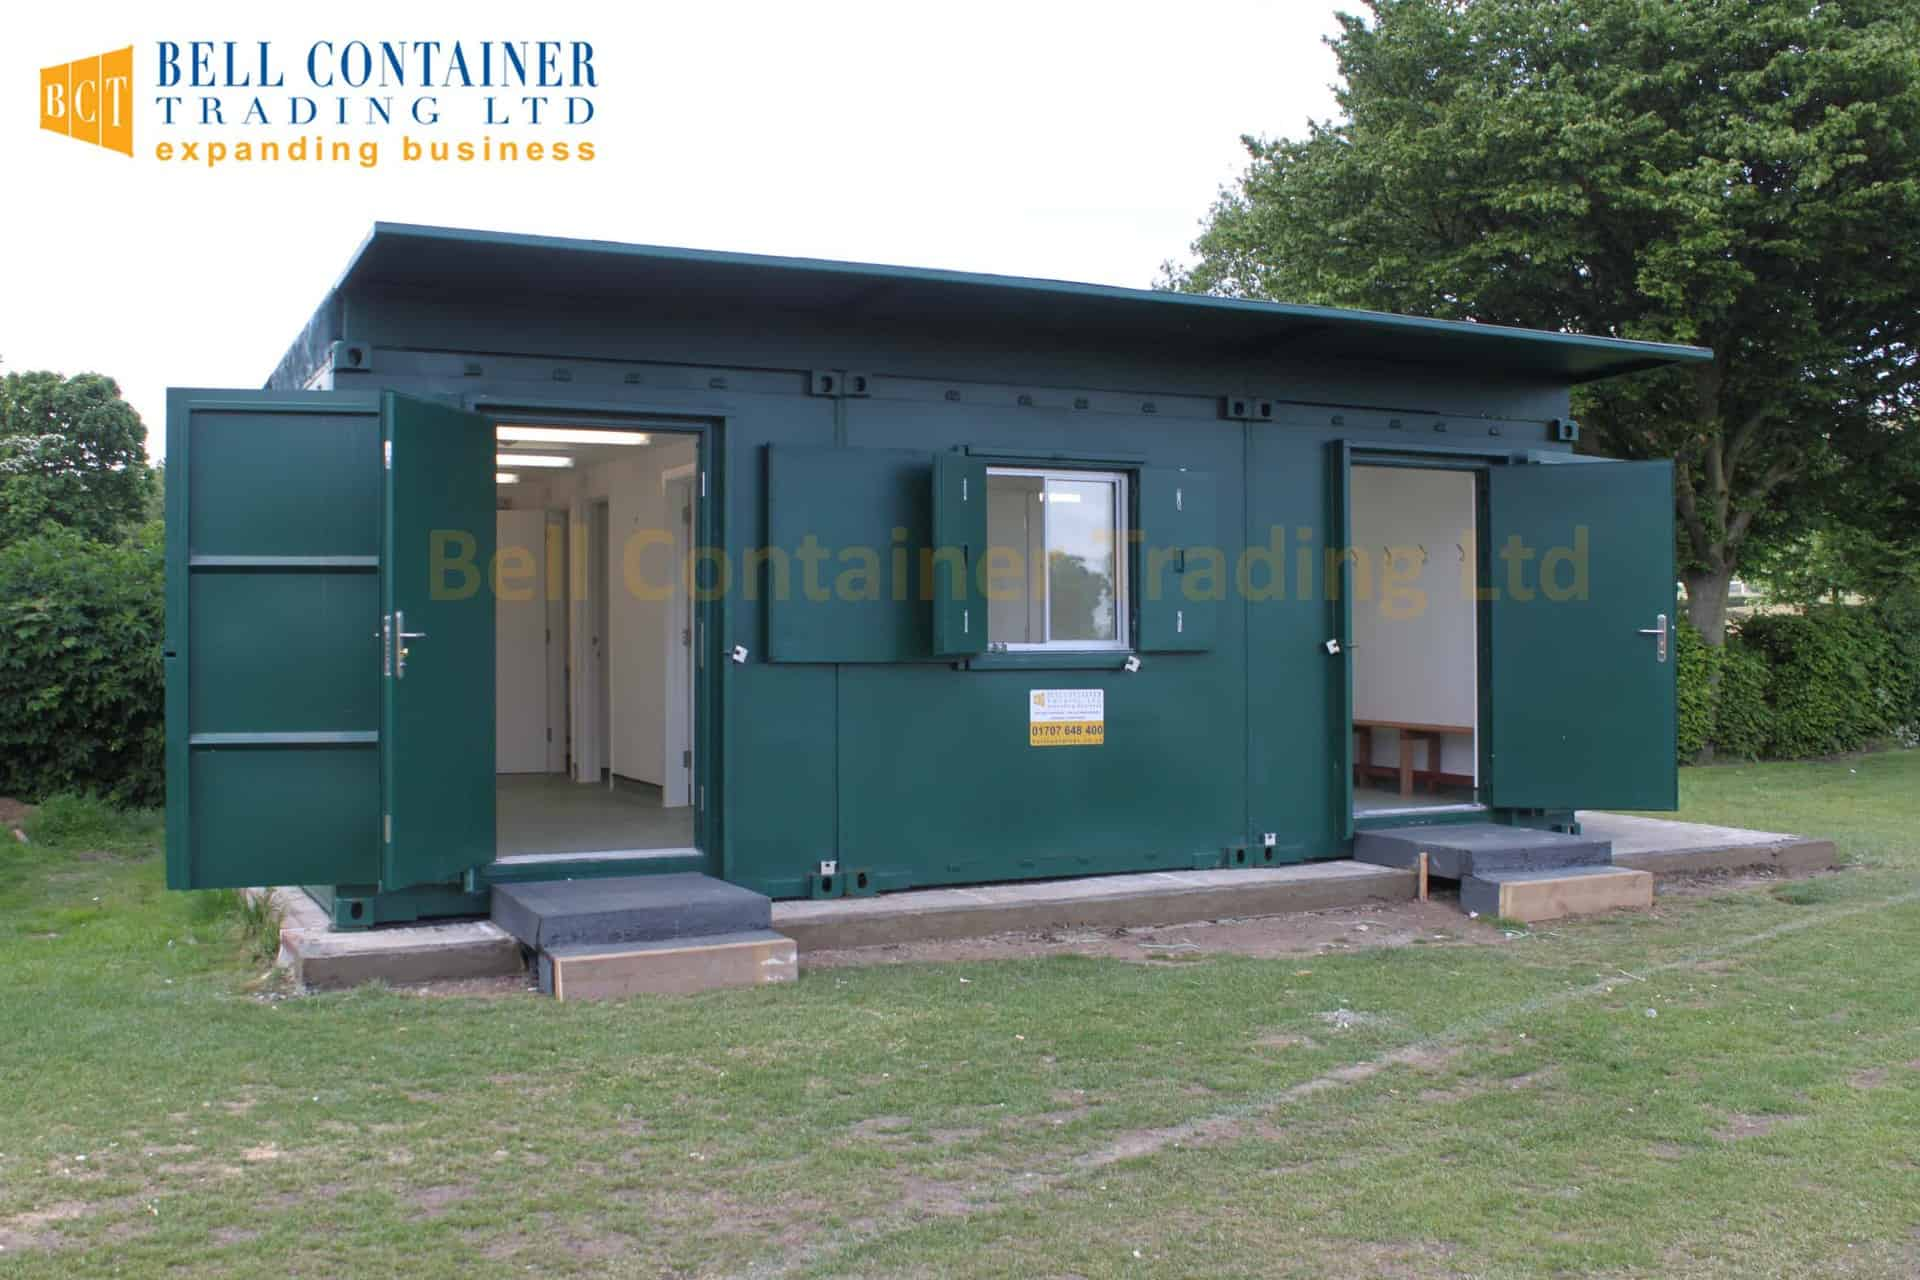 Container Changing Rooms Shipping Container Conversions London Based Cricket Club Storage